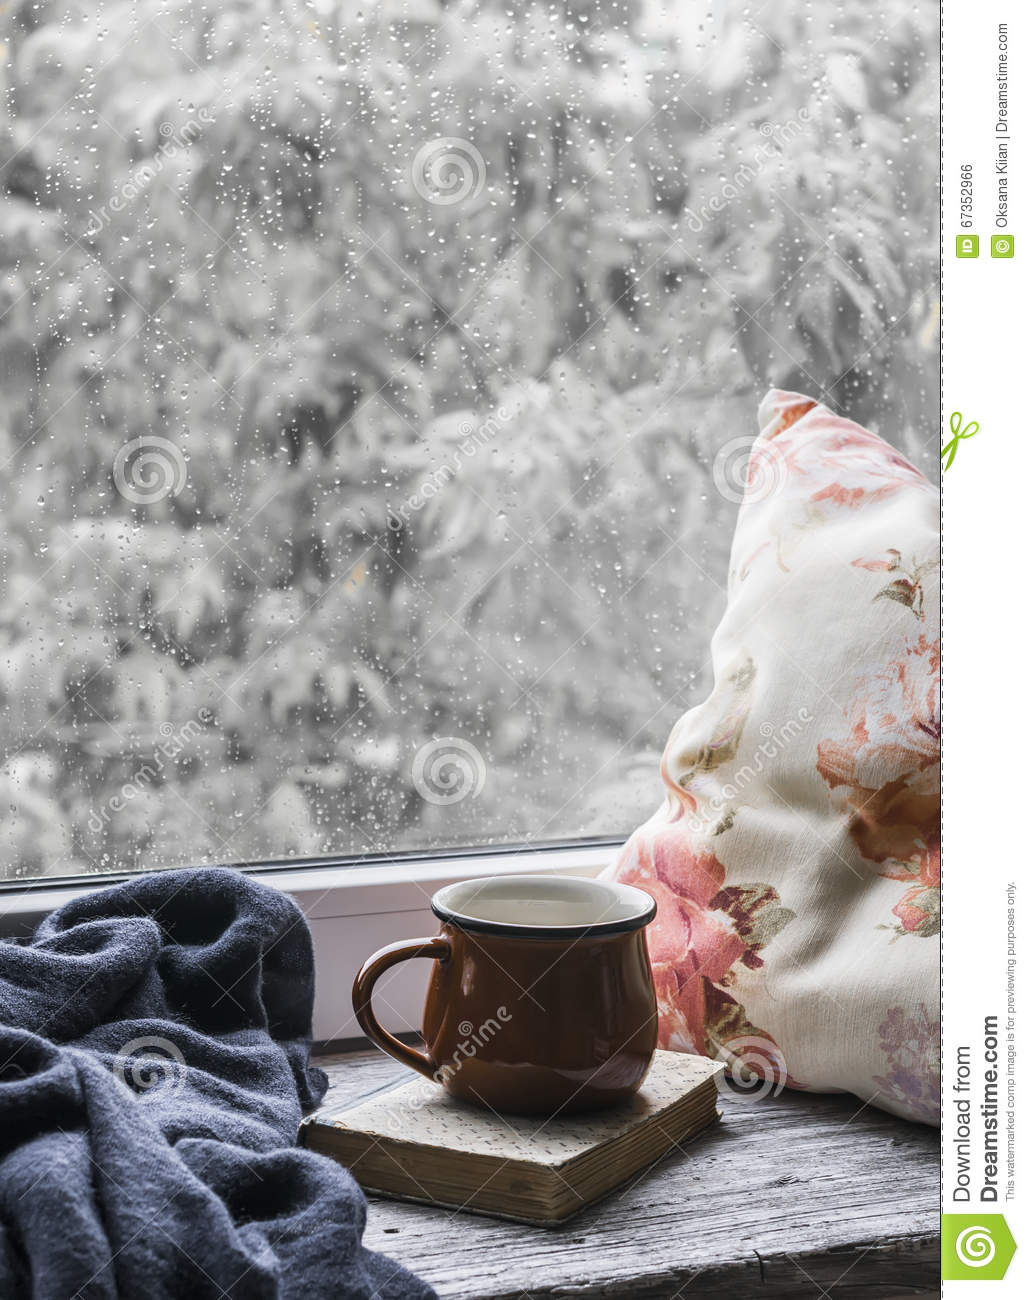 Coffee Art Livre In Rainy Day Stock Photo Cartoondealer 19853070